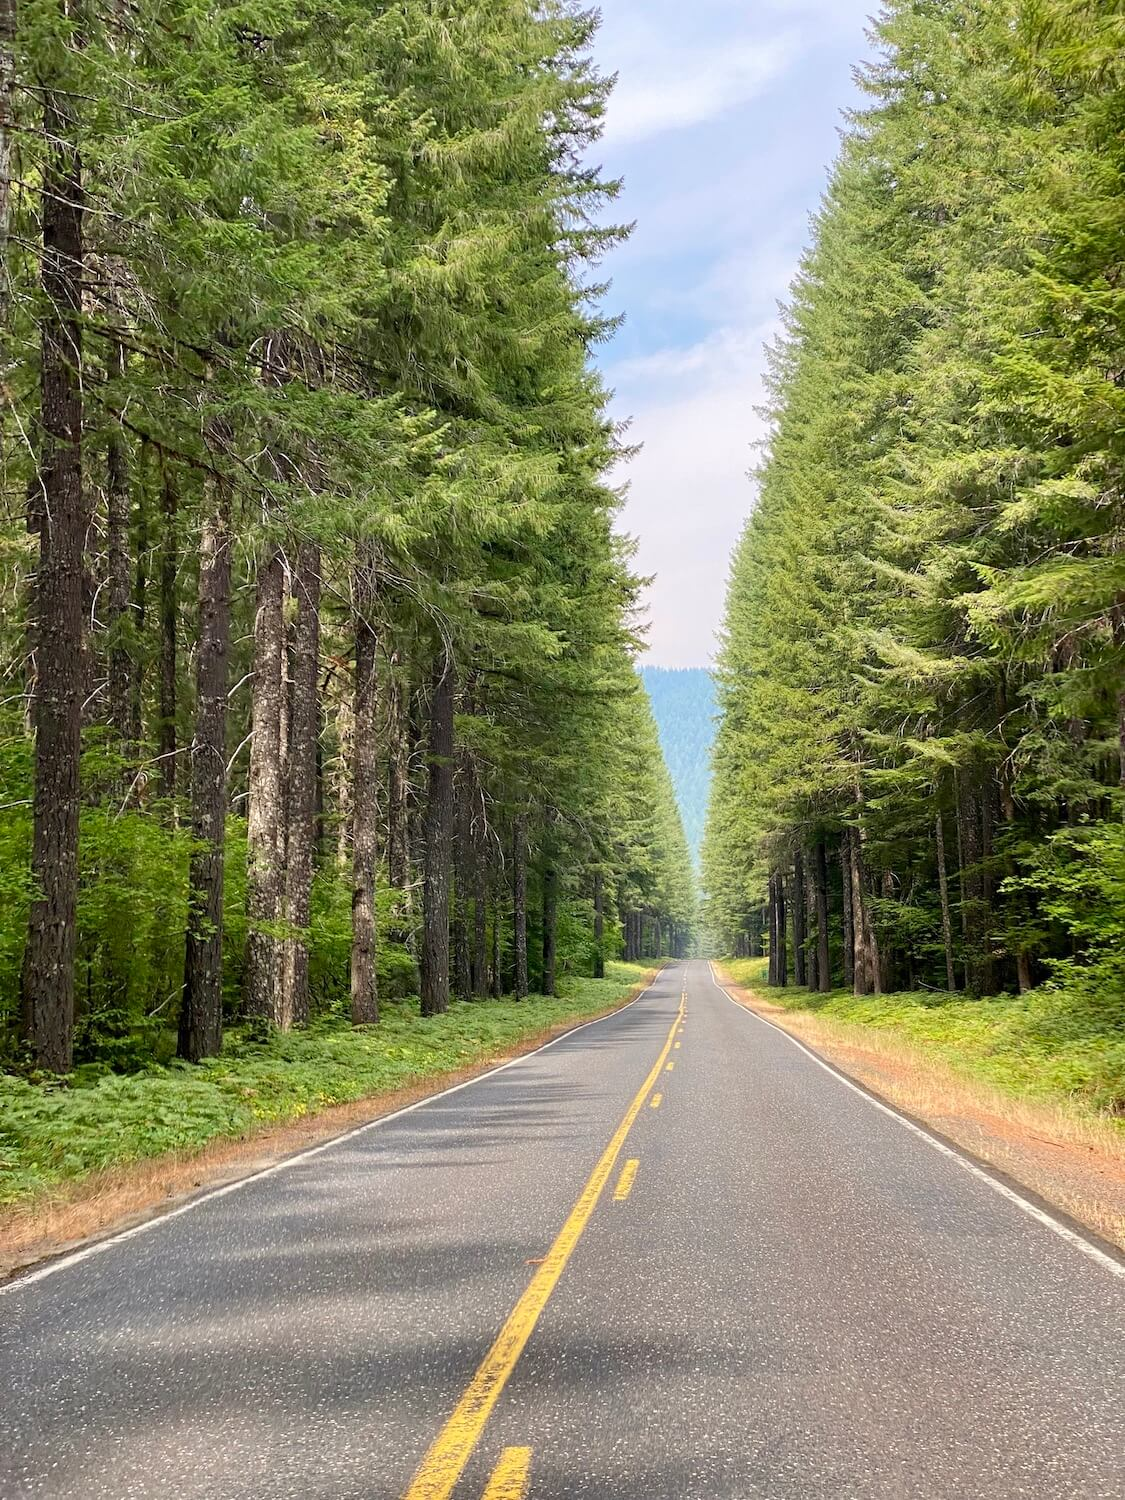 A forested road heads toward more forest with trees on both sides of the road. They are bright green with fir branches and the roadway has a yellow line in the middle.